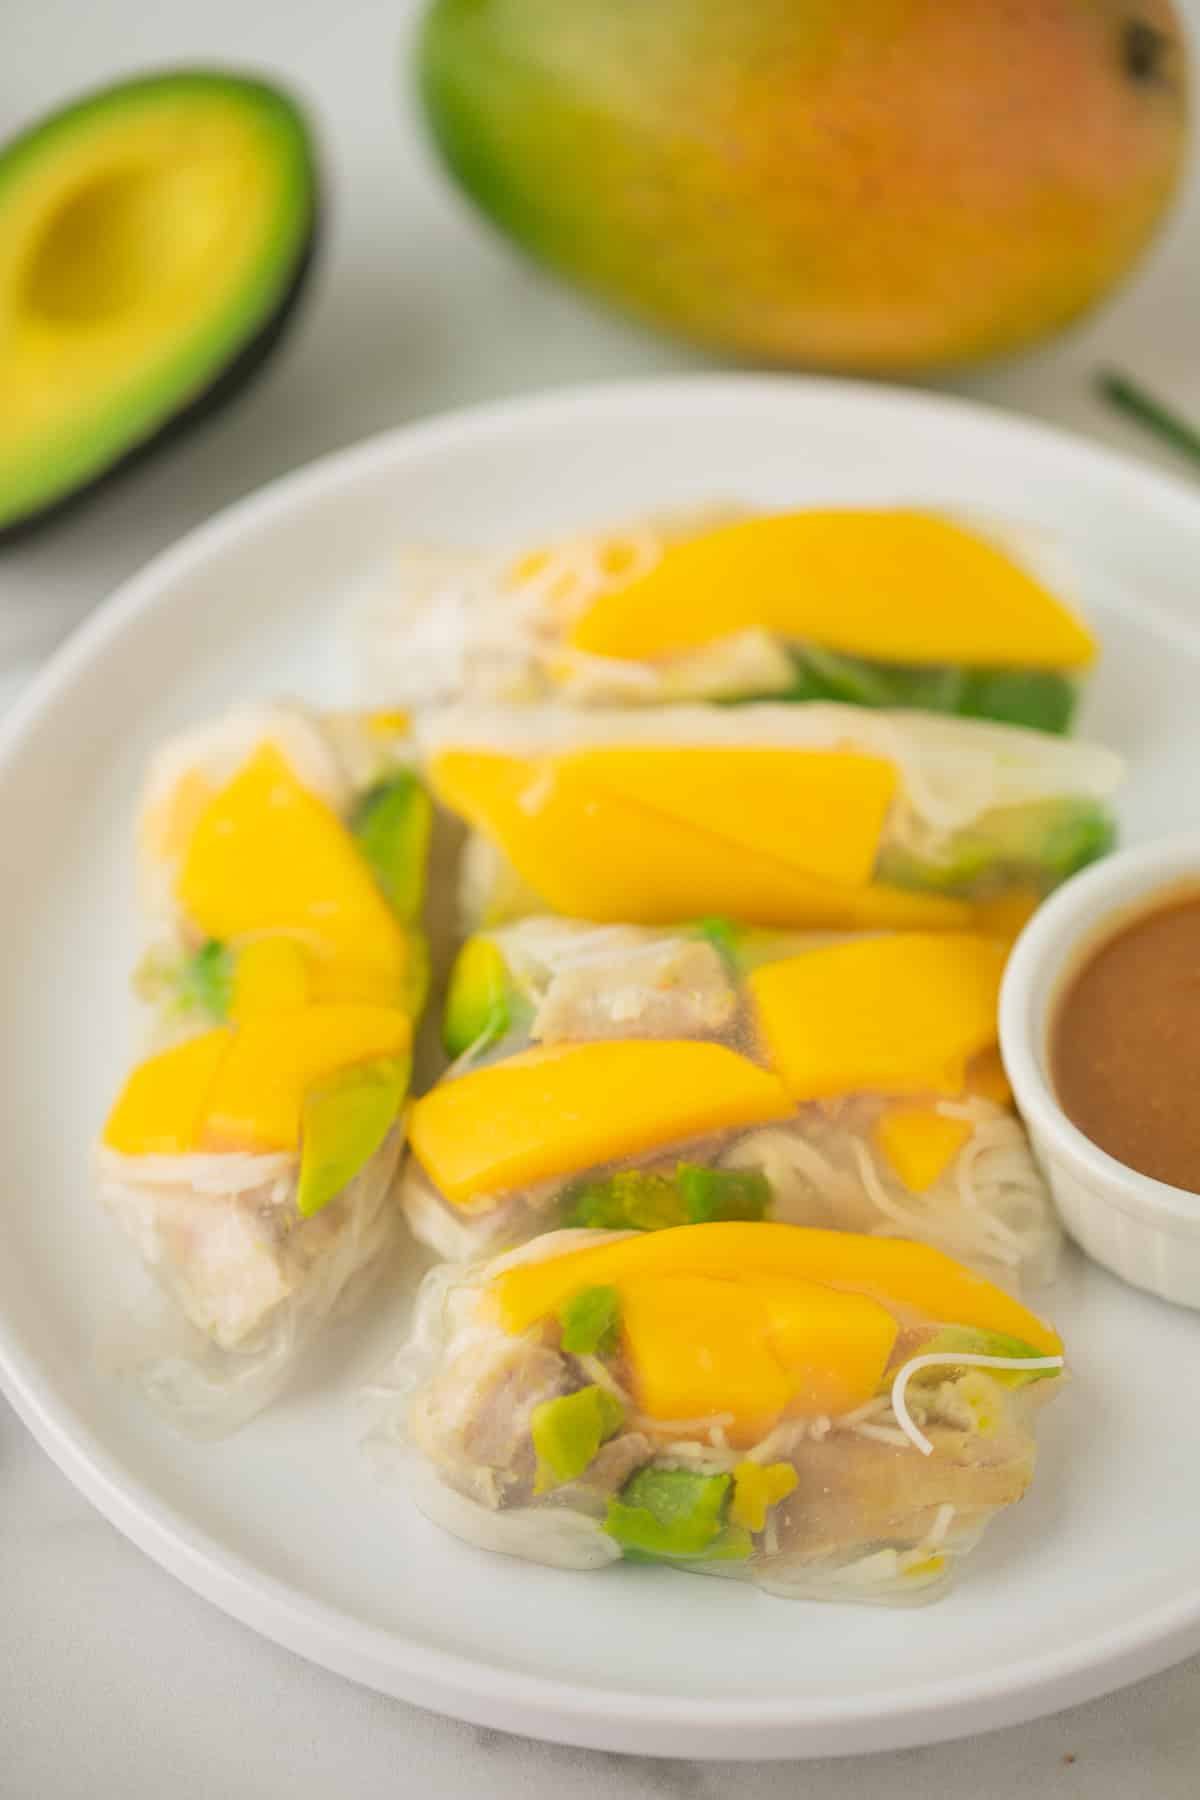 plate with mango summer rolls with a peanut dipping sauce